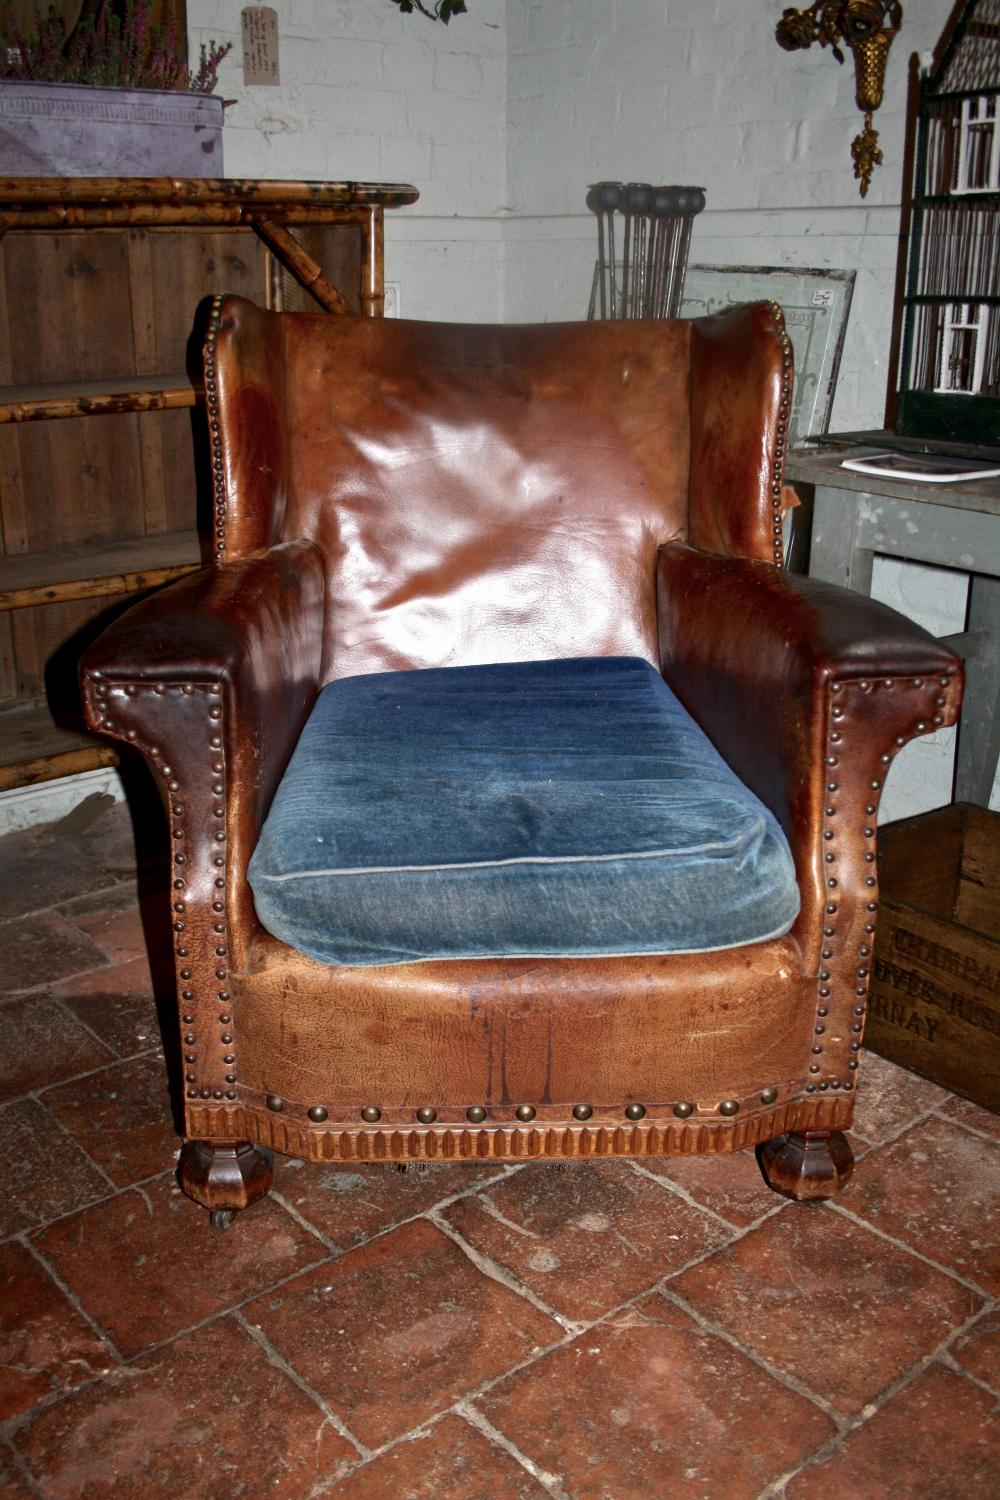 Leather gentleman's chair with cushion